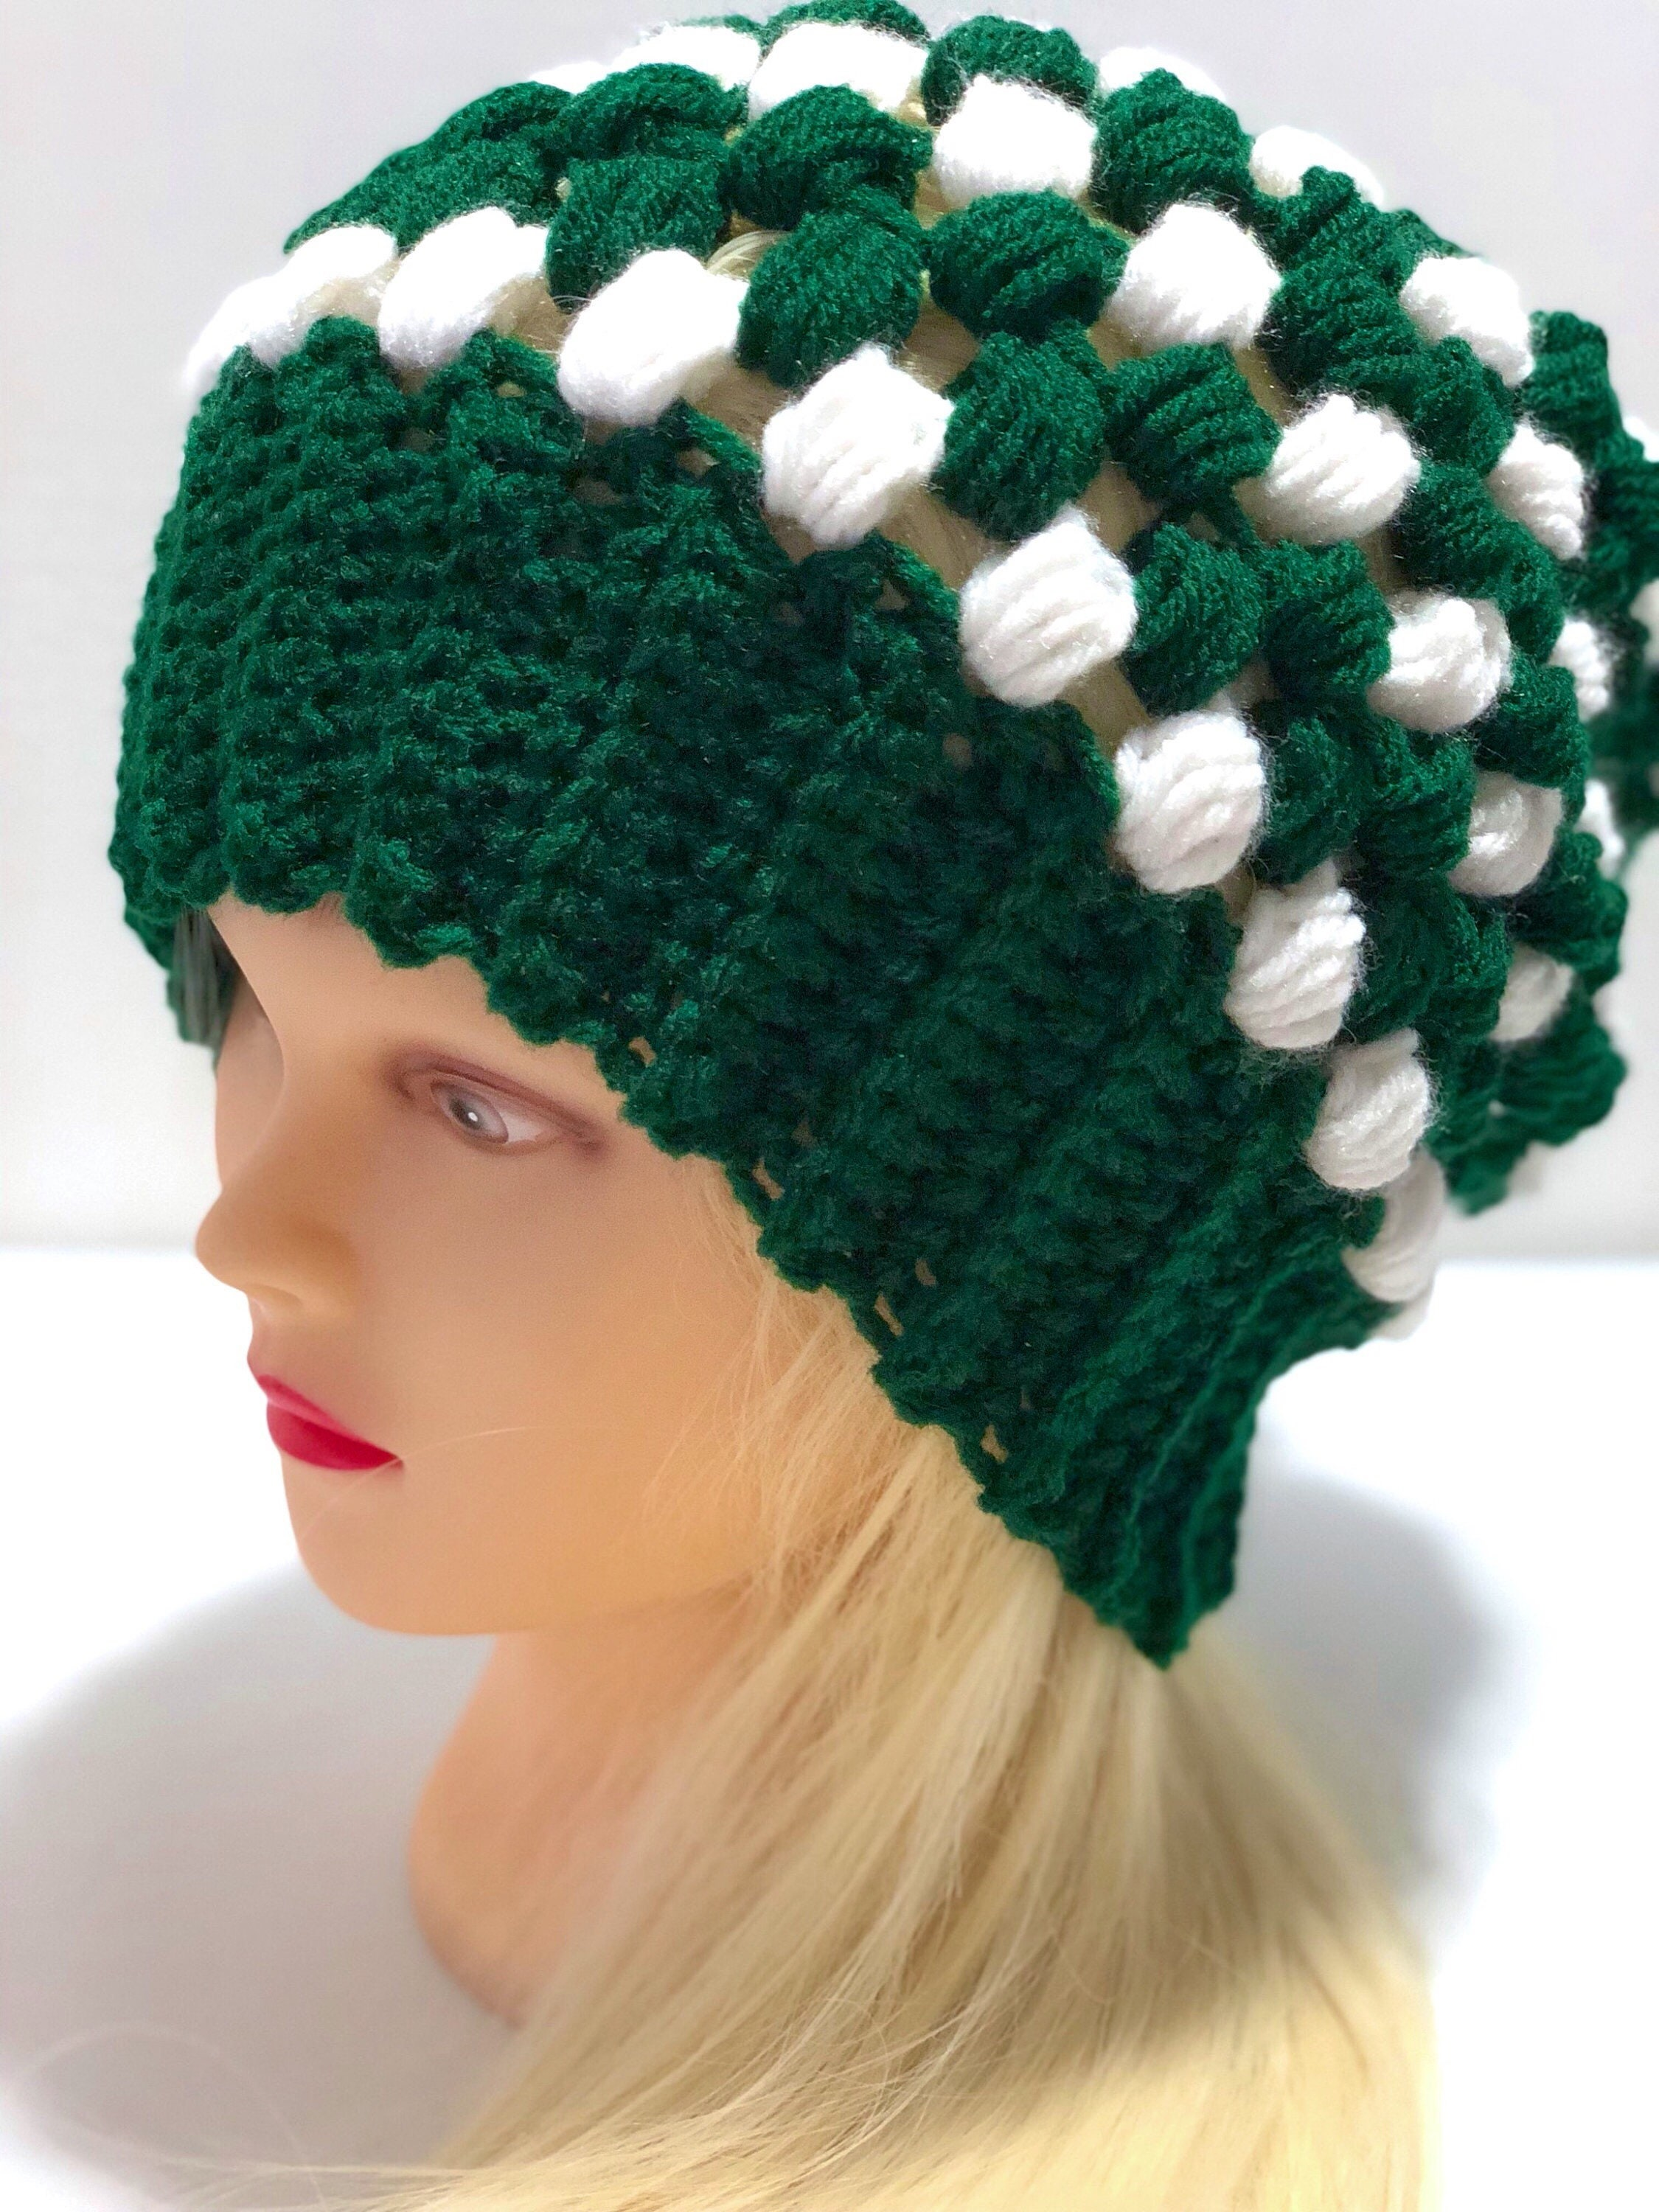 aa5bb4fdc22 Michigan state university slouchy beanie msu hat crochet etsy jpg 2250x3000  Msu crochet hat patterns